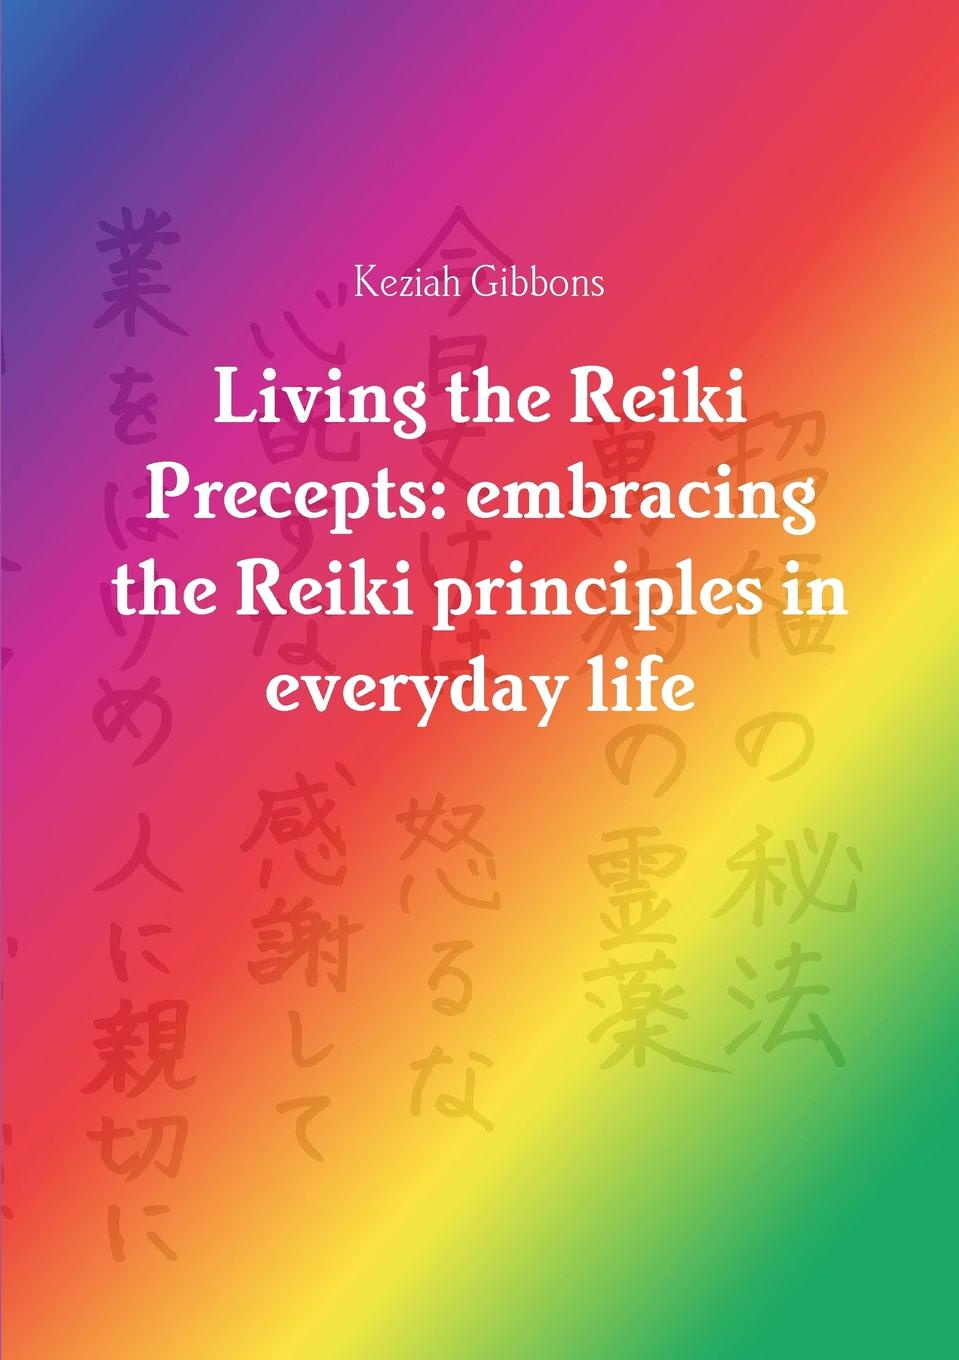 Фото - Keziah Gibbons Living the Reiki Precepts. embracing the Reiki principles in everyday life kathleen prasad the animal reiki handbook finding your way with reiki in your local shelter sanctuary or rescue